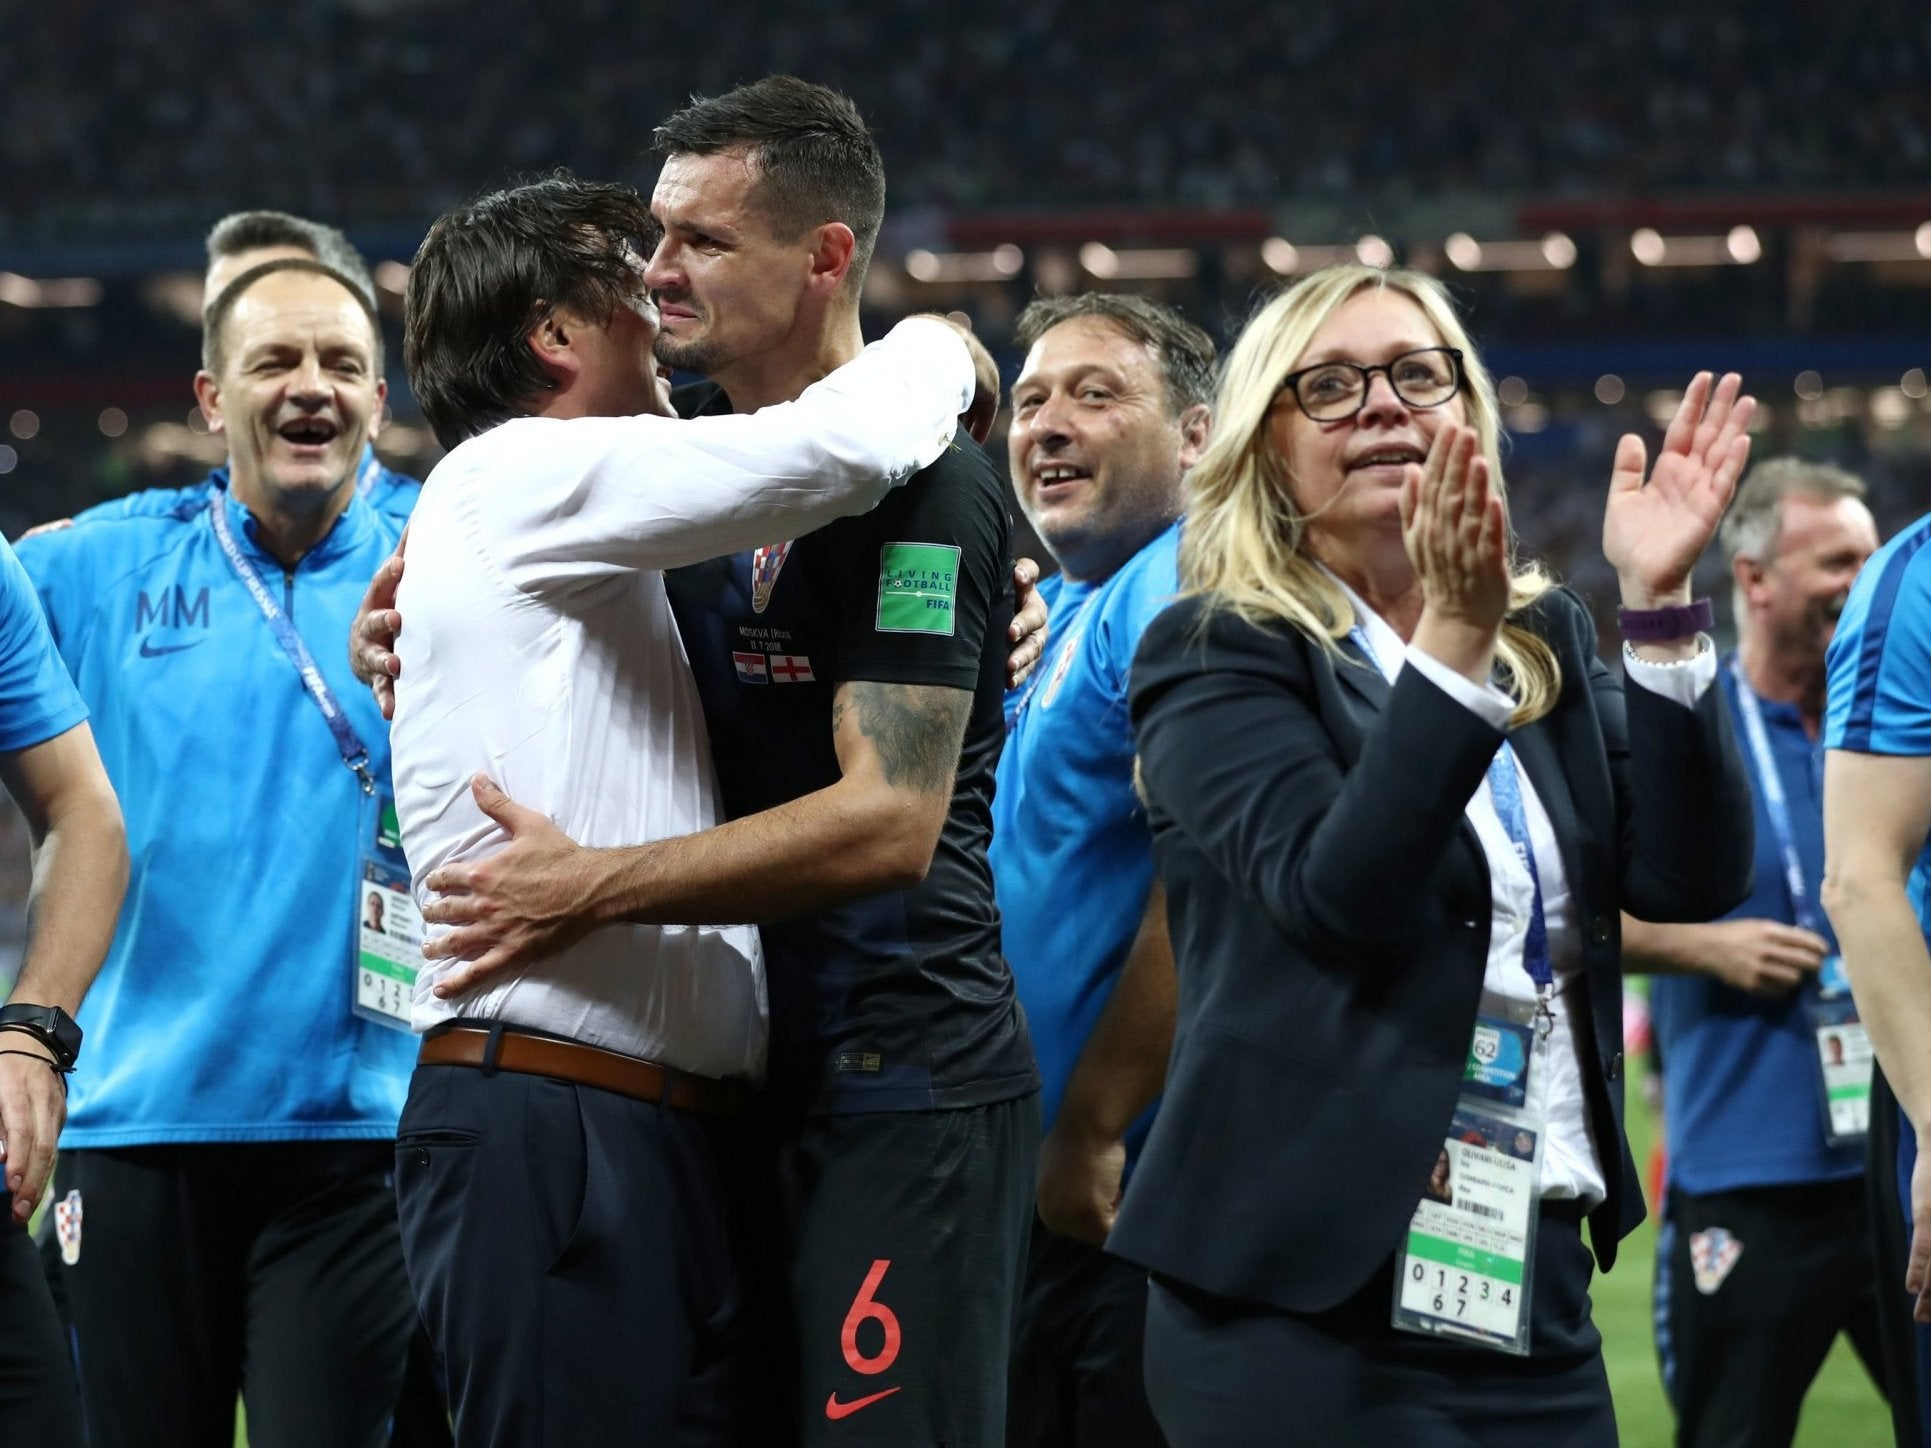 World Cup final 2018: Croatia produced their best performance of the tournament in defeat to France, insists coach Zlatko Dalic